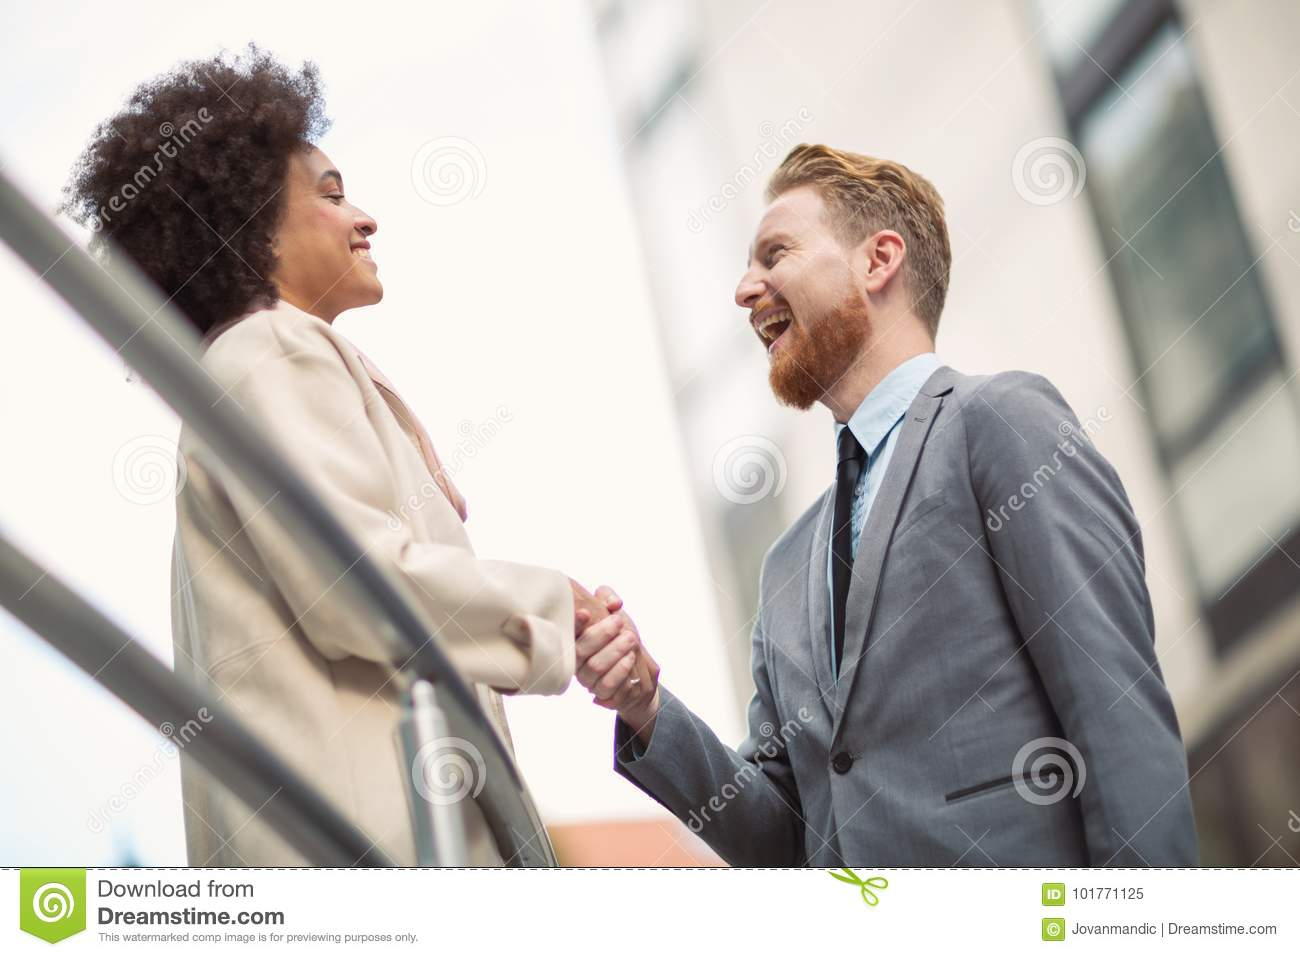 Business people shaking hands on city street